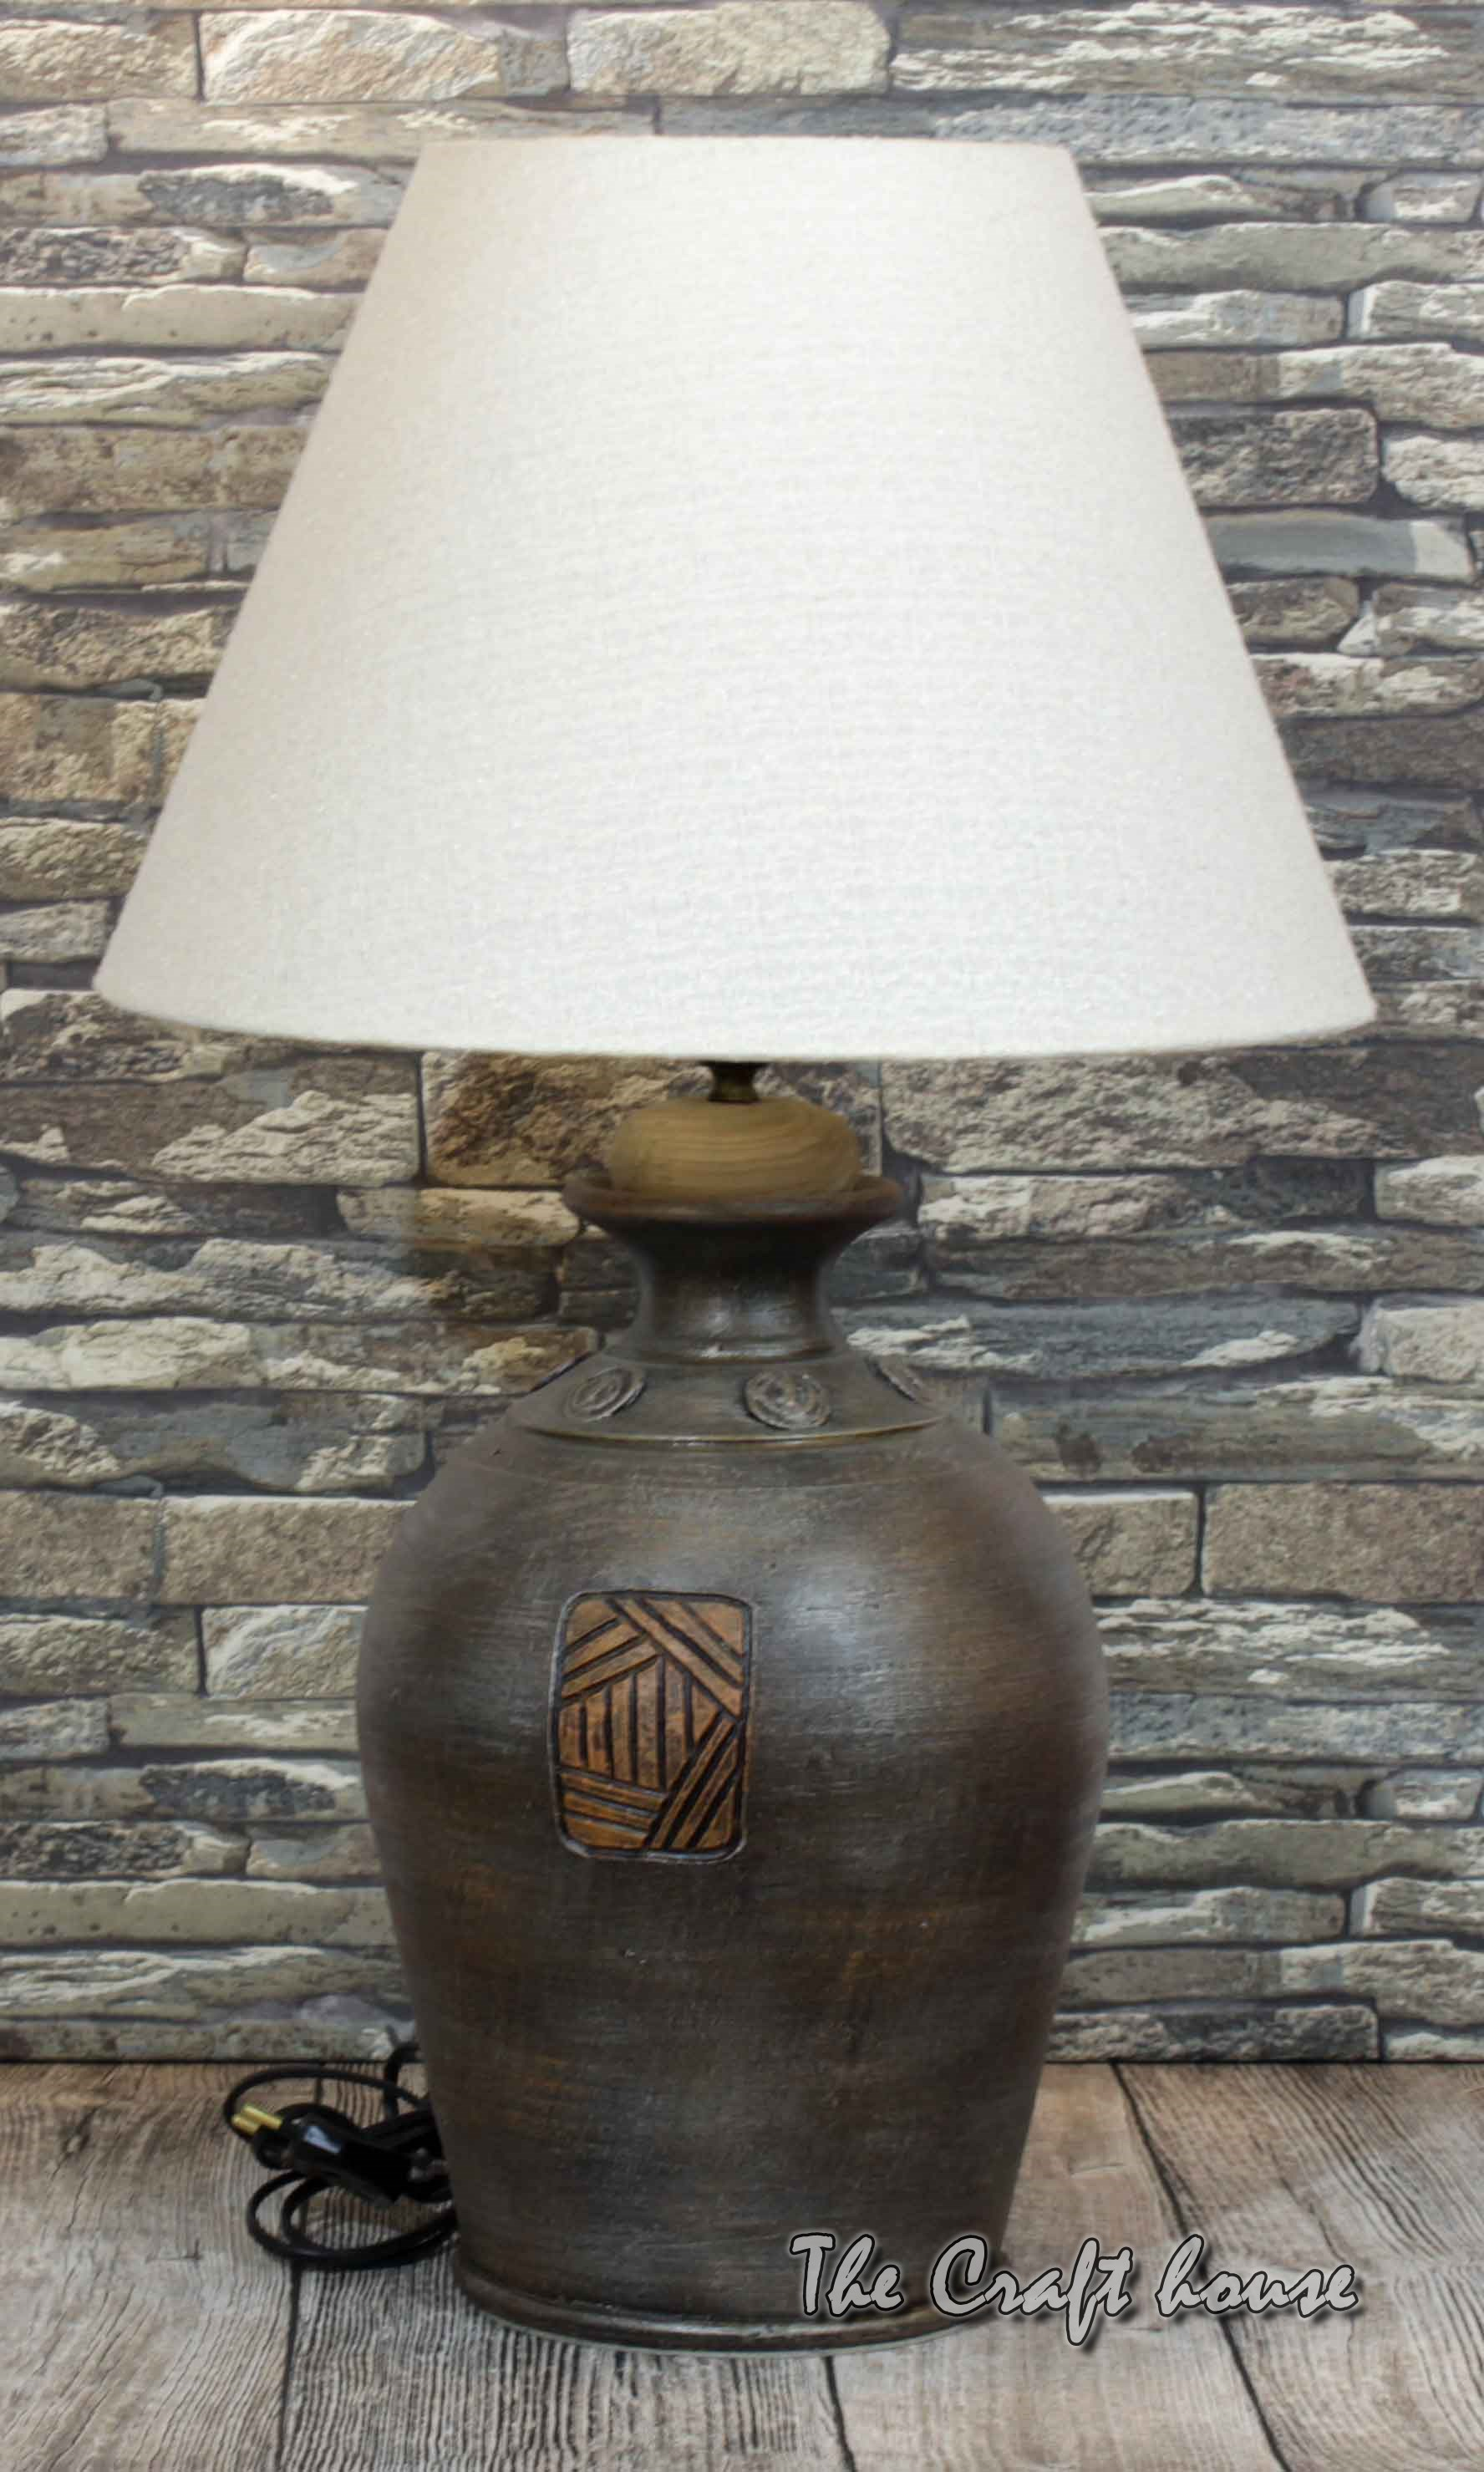 Ceramic art lamp